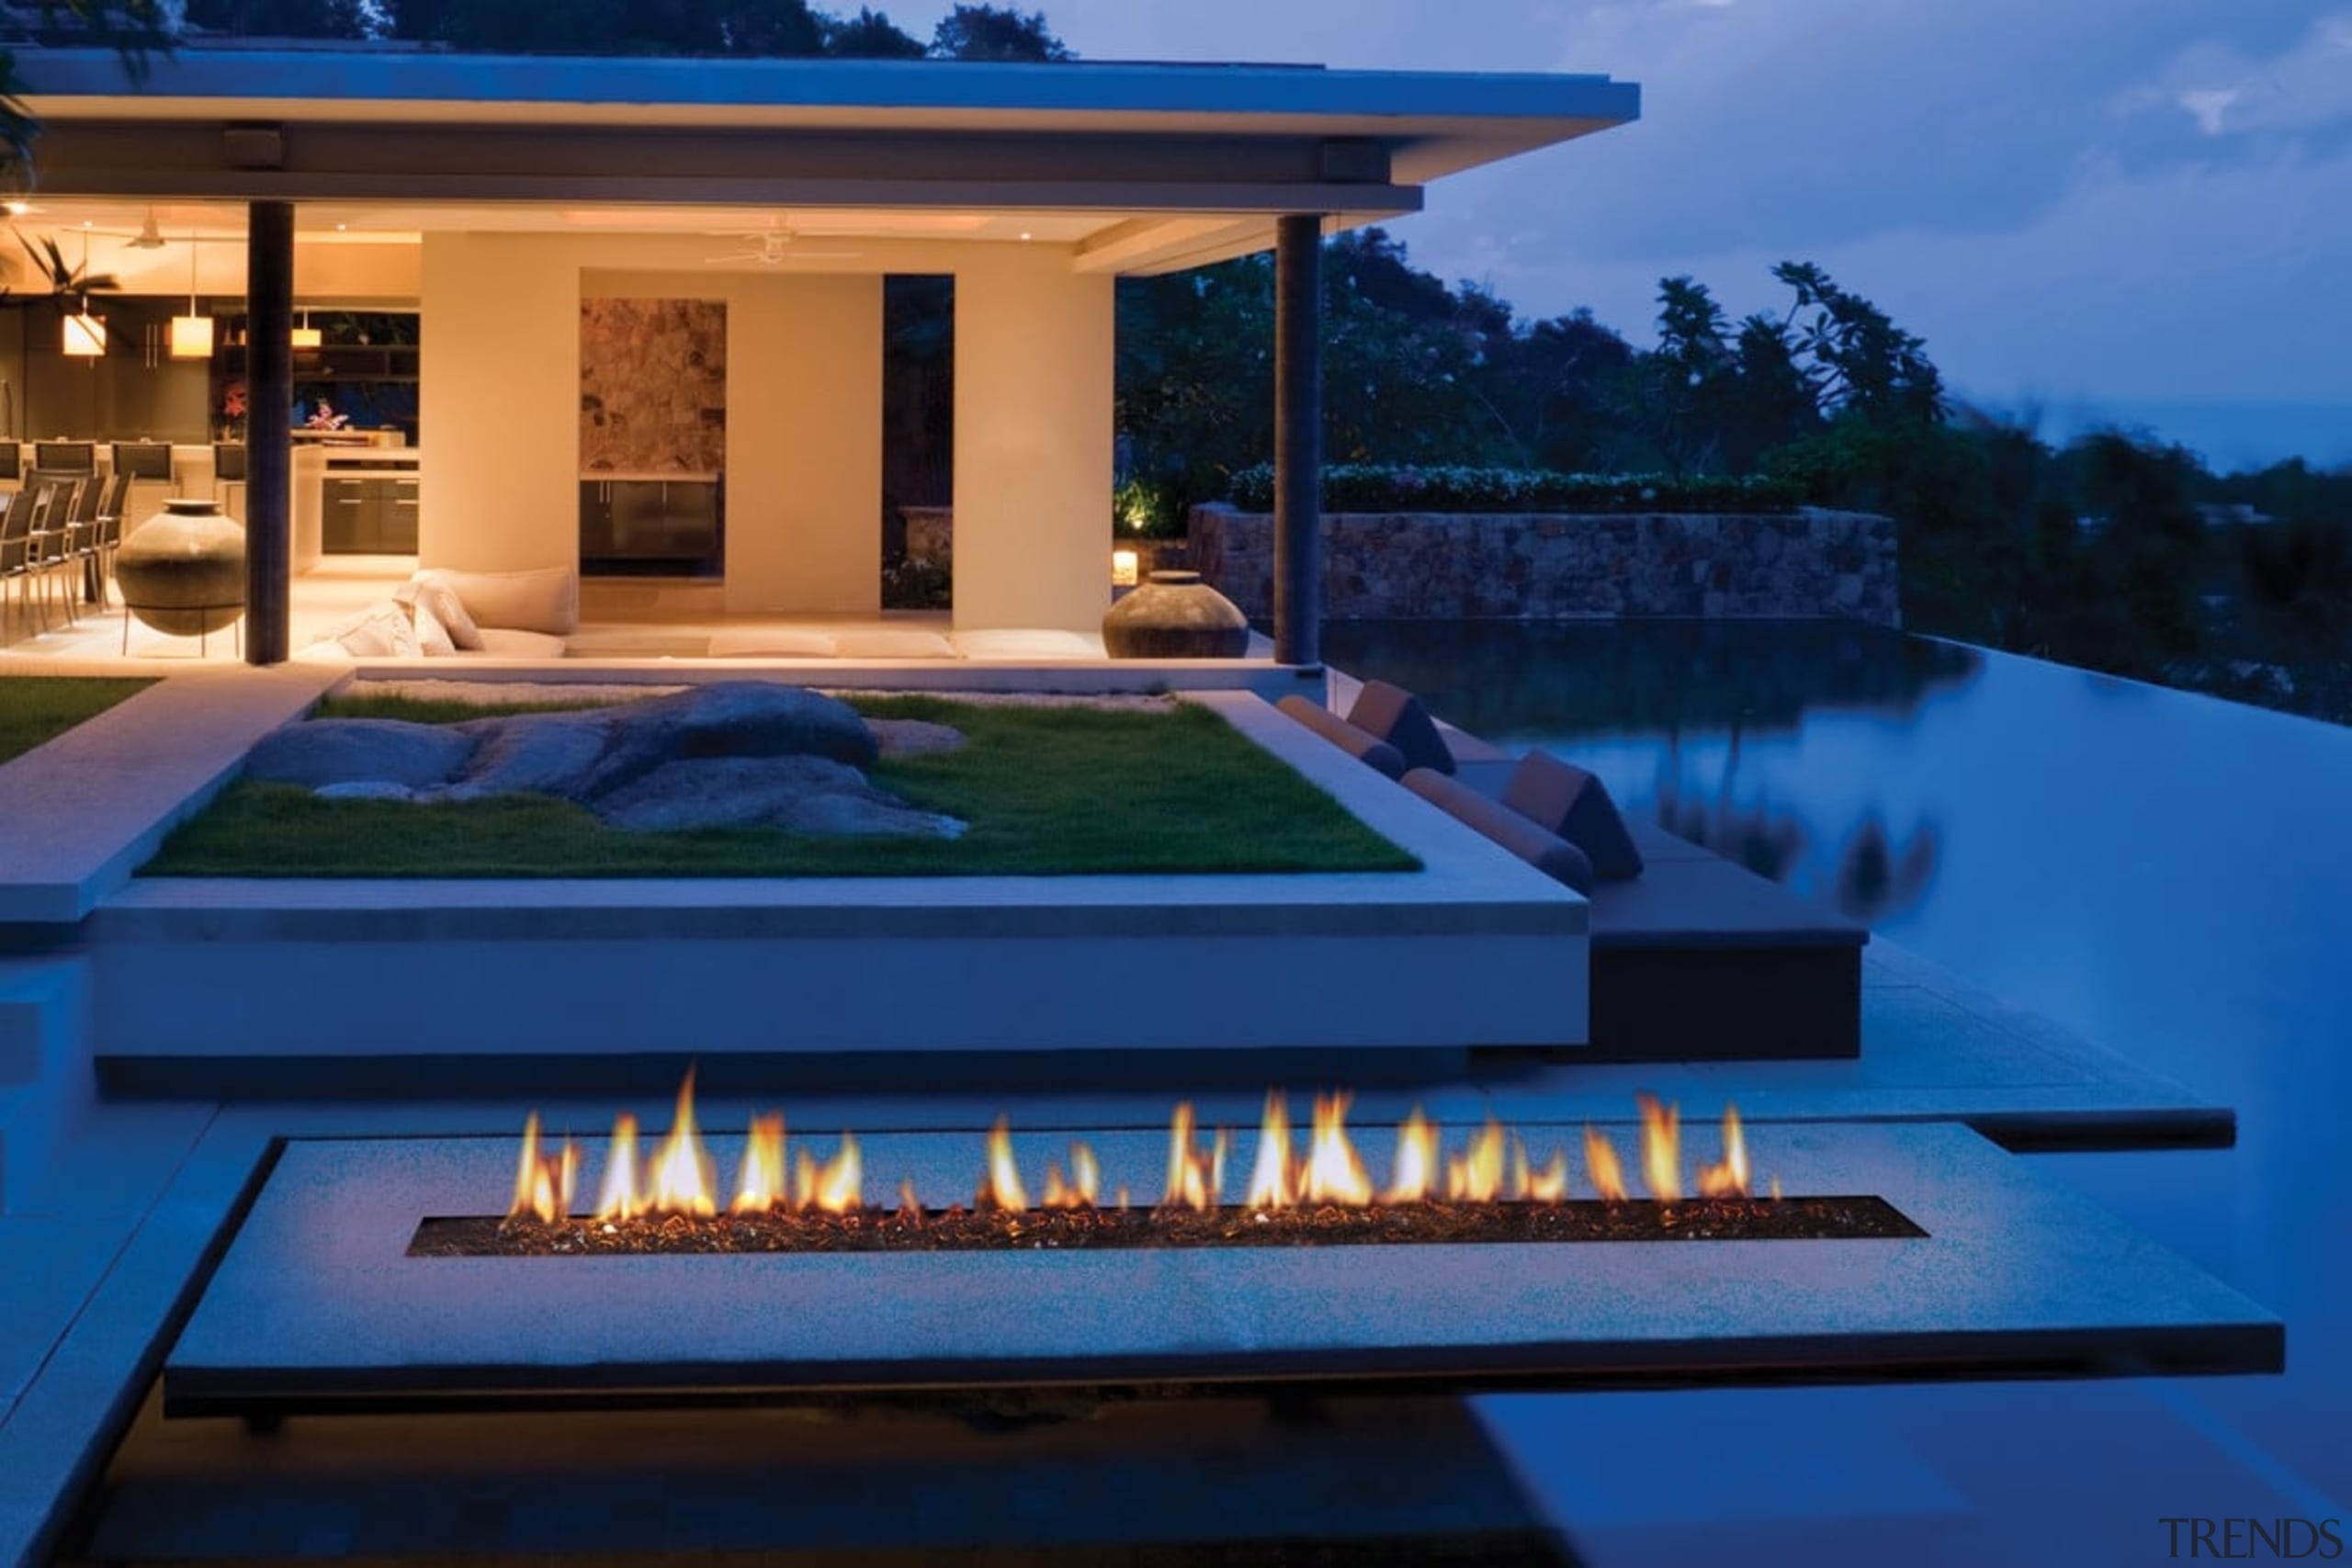 Outdoor Gas Fires - architecture | estate | architecture, estate, home, house, landscape lighting, leisure, lighting, property, real estate, resort, swimming pool, villa, blue